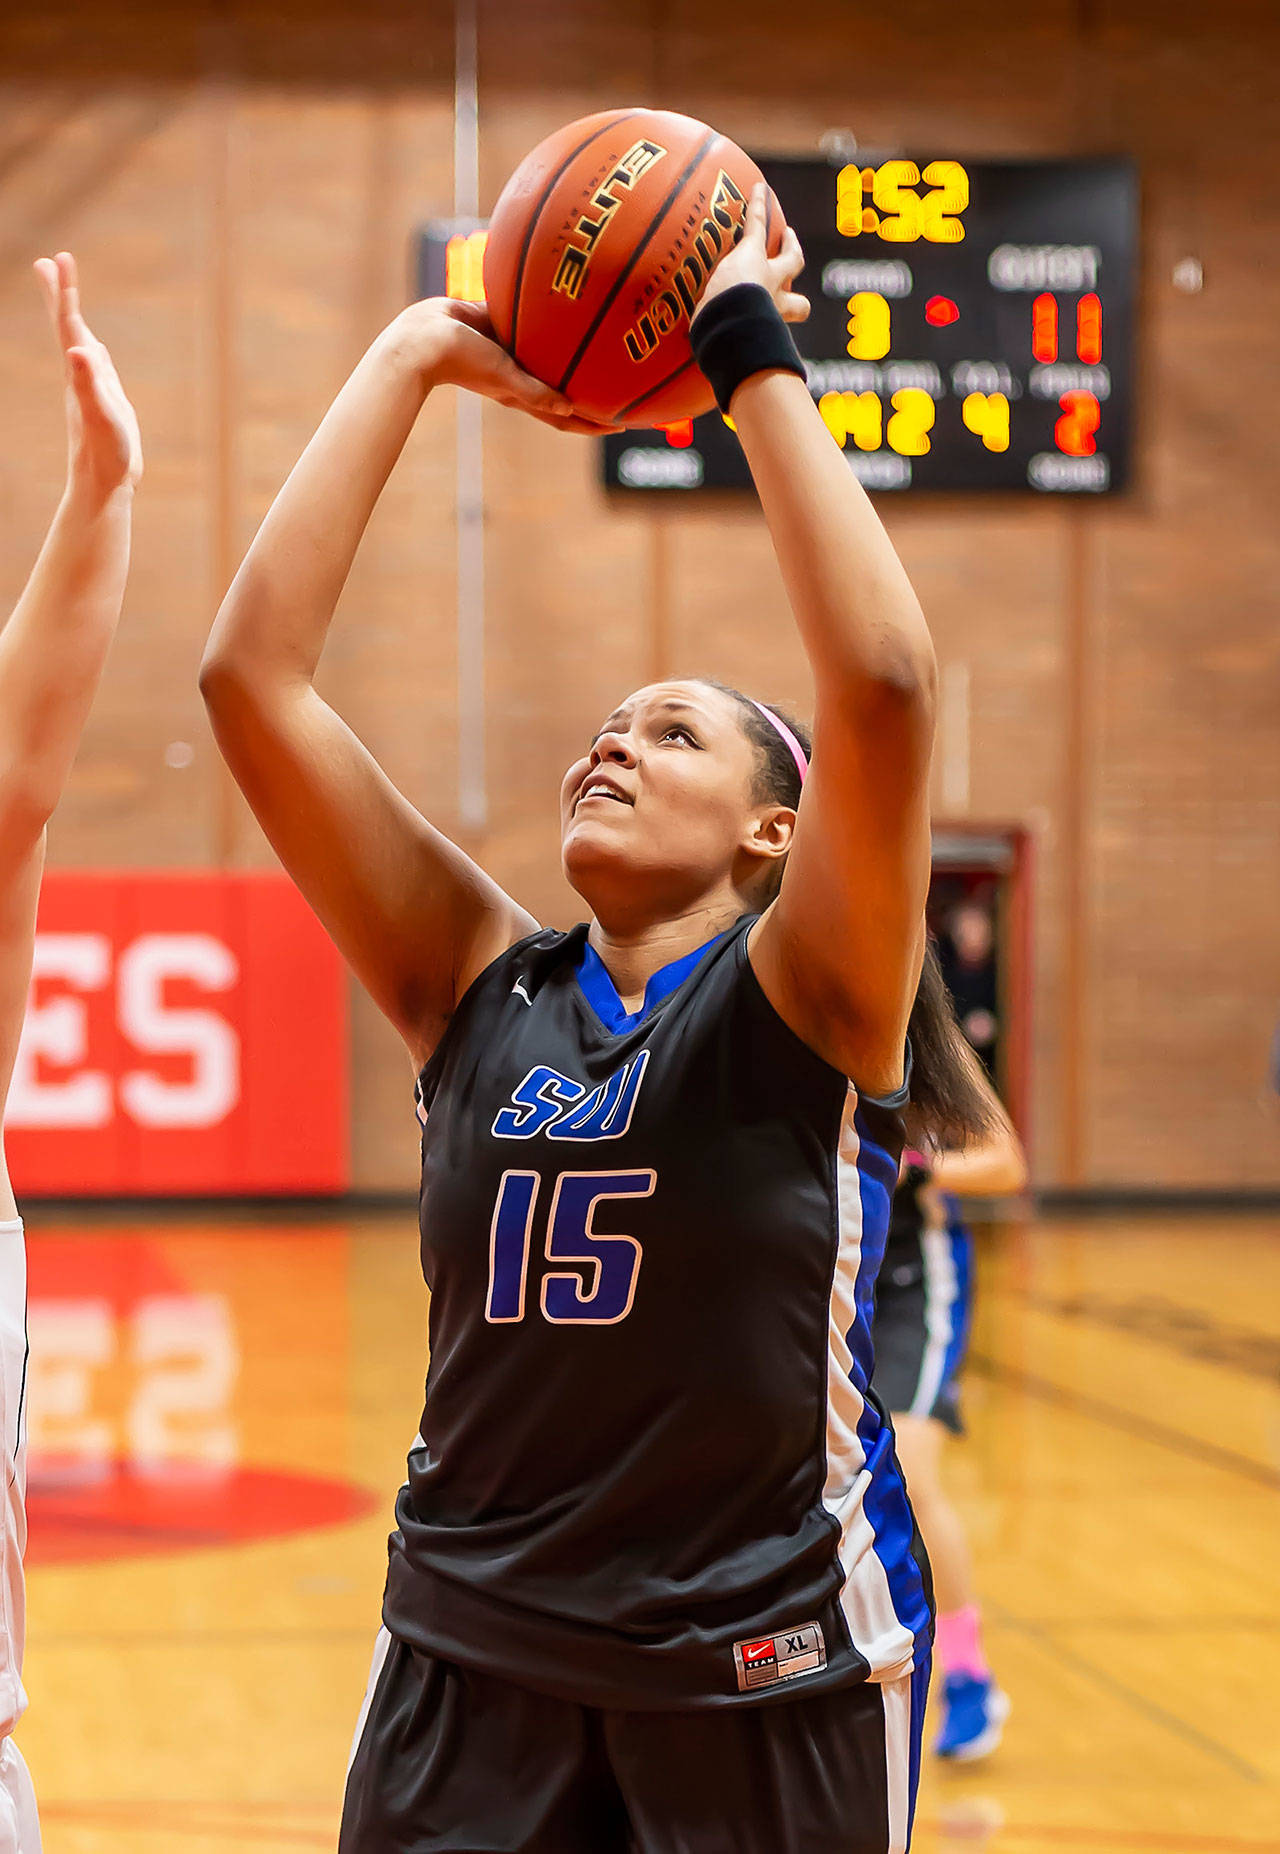 Arianna Briggs scored 2 of her team-high 6 points Friday in Coupeville.	(Photo by John Fisken)